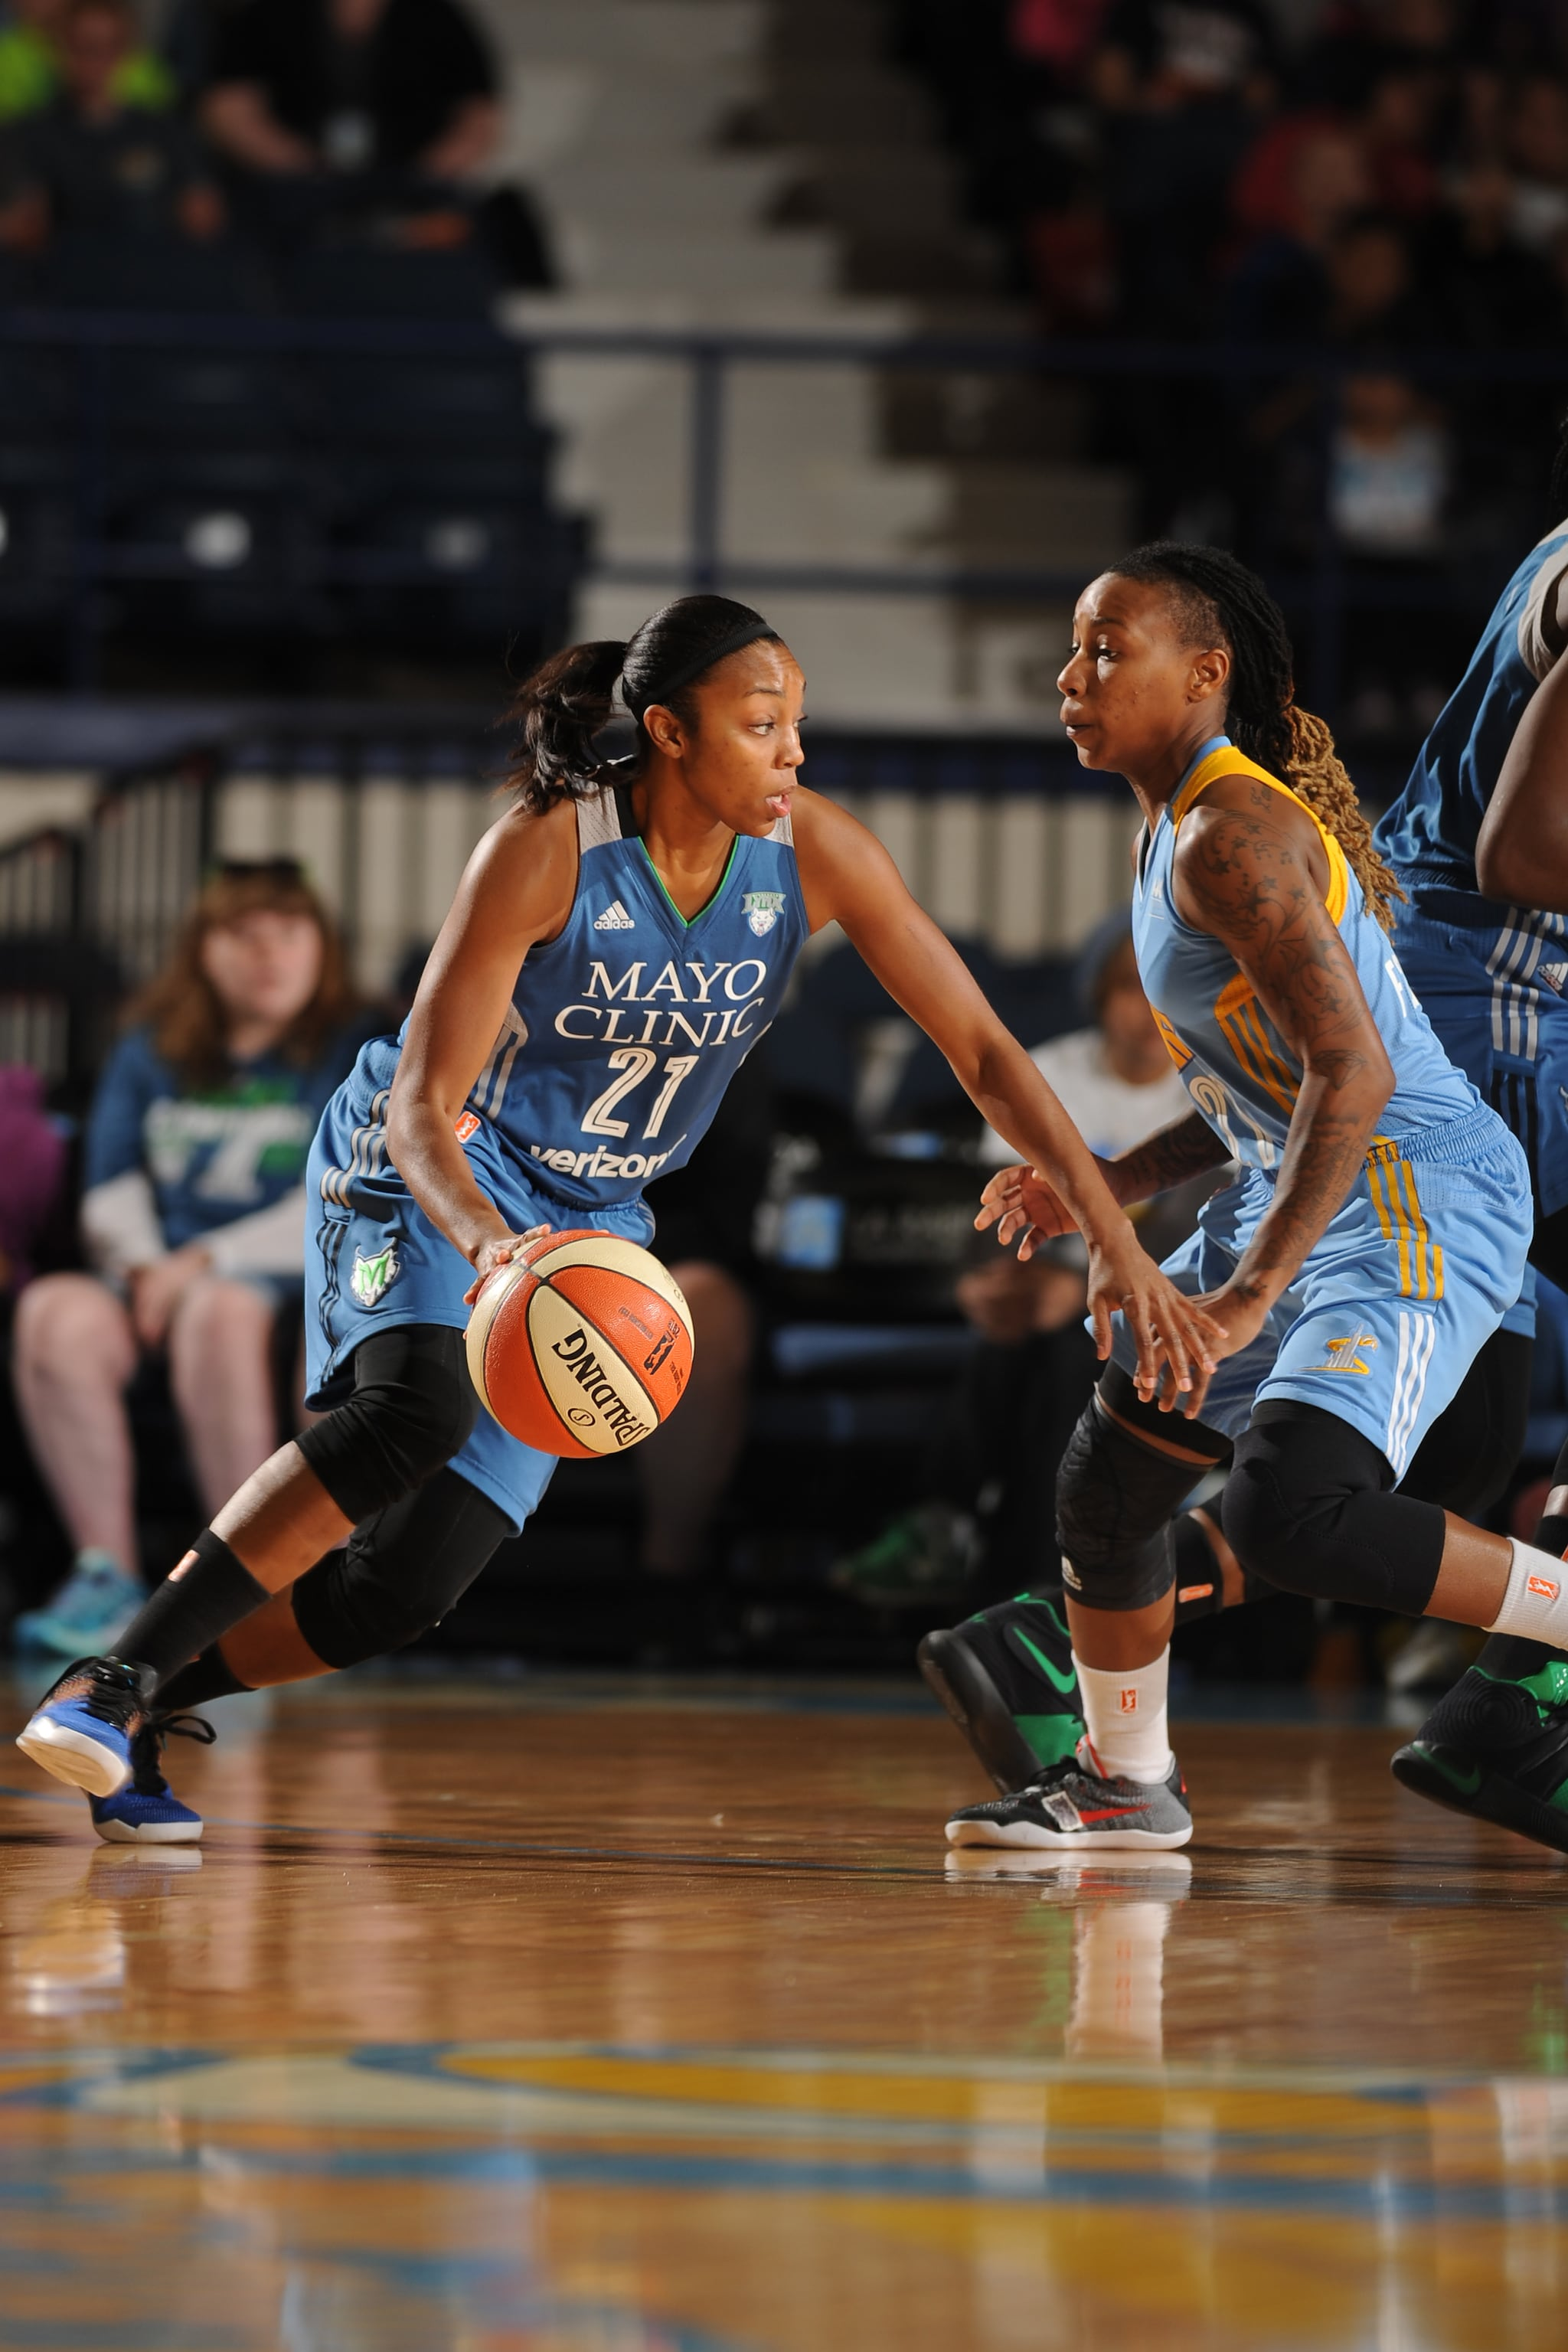 ROSEMONT, IL- MAY 18: Renee Montgomery #21 of the Minnesota Lynx handles the ball against the Chicago Sky on May 18, 2016 at the Allstate Arena in Rosemont, Illinois. NOTE TO USER: User expressly acknowledges and agrees that, by downloading and/or using this photograph, user is consenting to the terms and conditions of the Getty Images License Agreement. Mandatory Copyright Notice: Copyright 2016 NBAE (Photo by Randy Belice/NBAE via Getty Images)